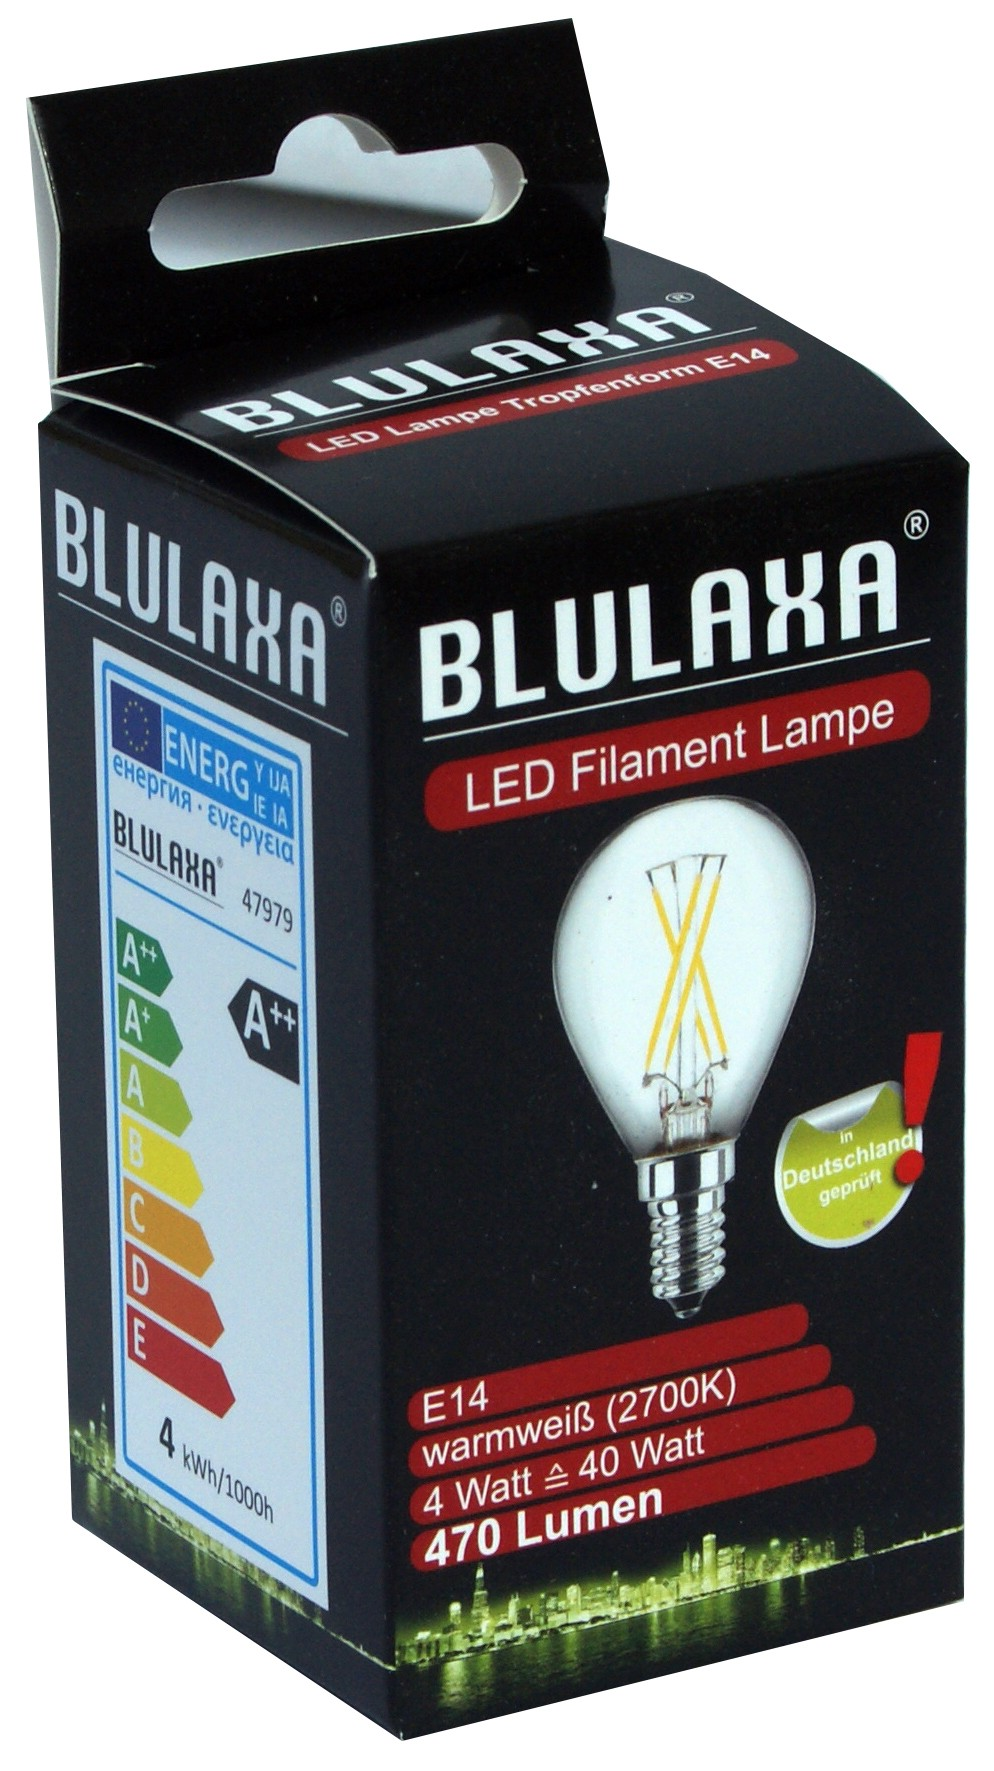 LED-Lampe 4 Watt, Blulaxa, E14